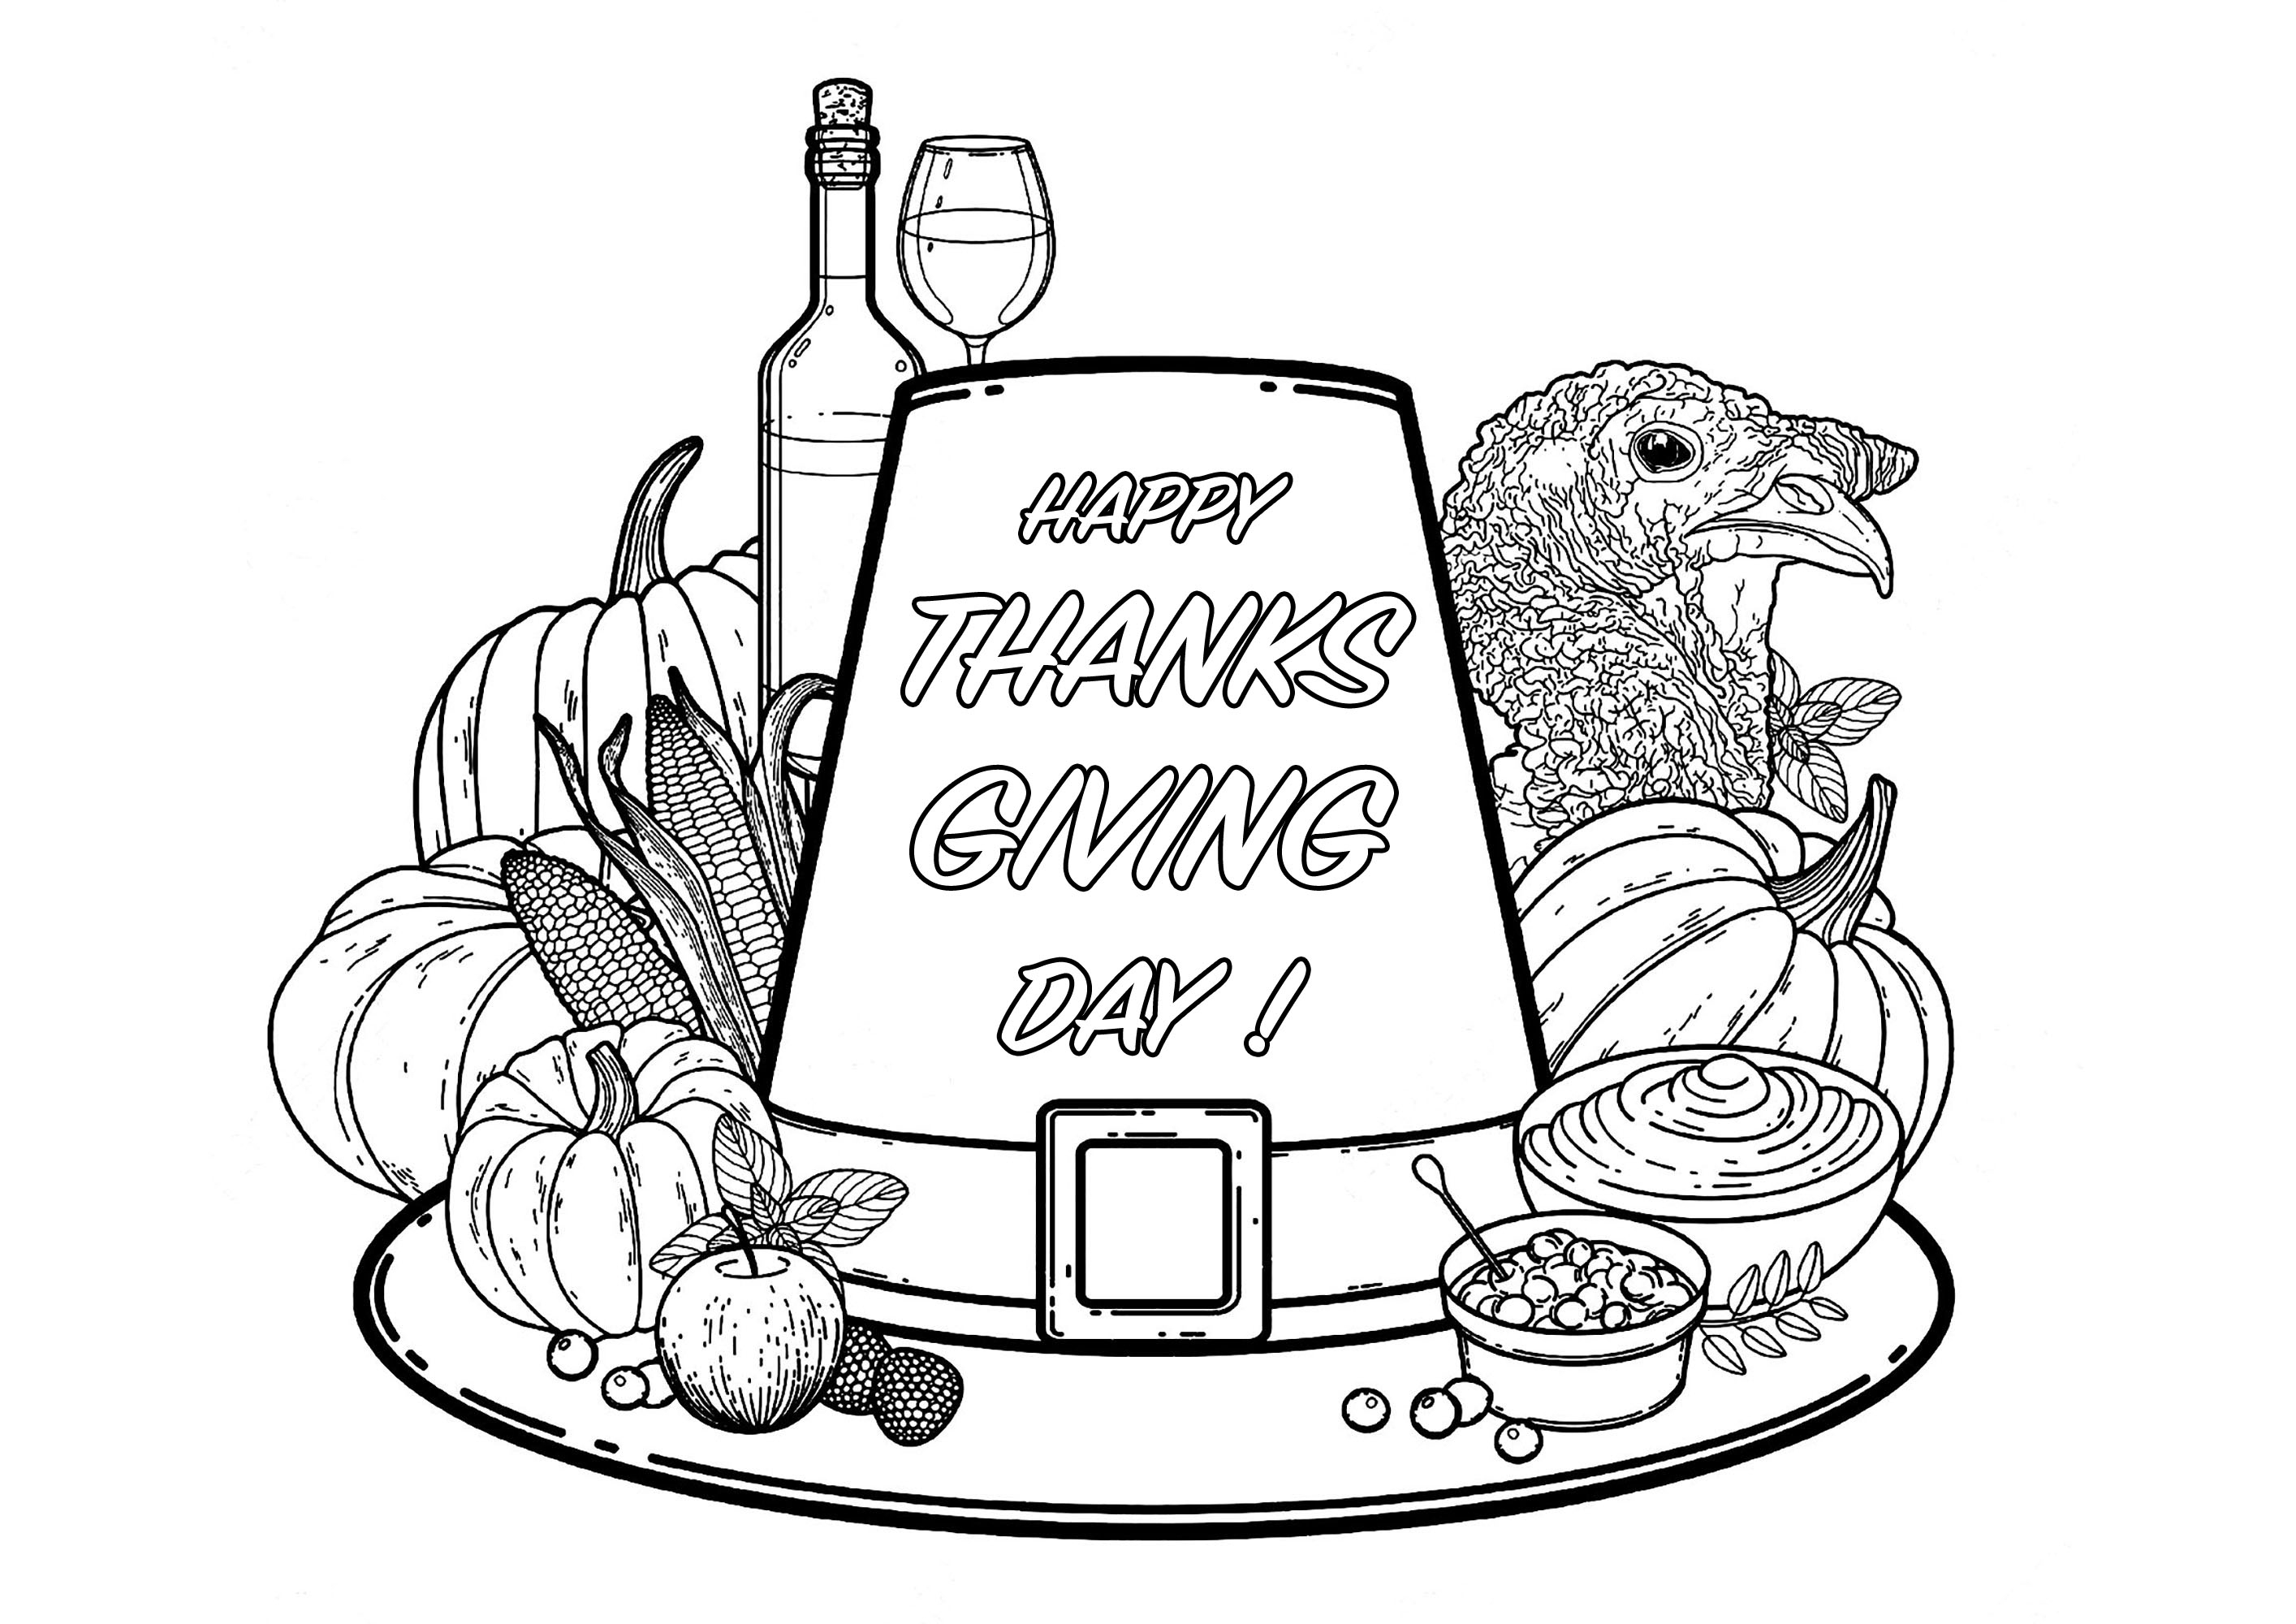 Thanksgiving Day - Thanksgiving - Coloriages Difficiles avec Coloriage Happy Color